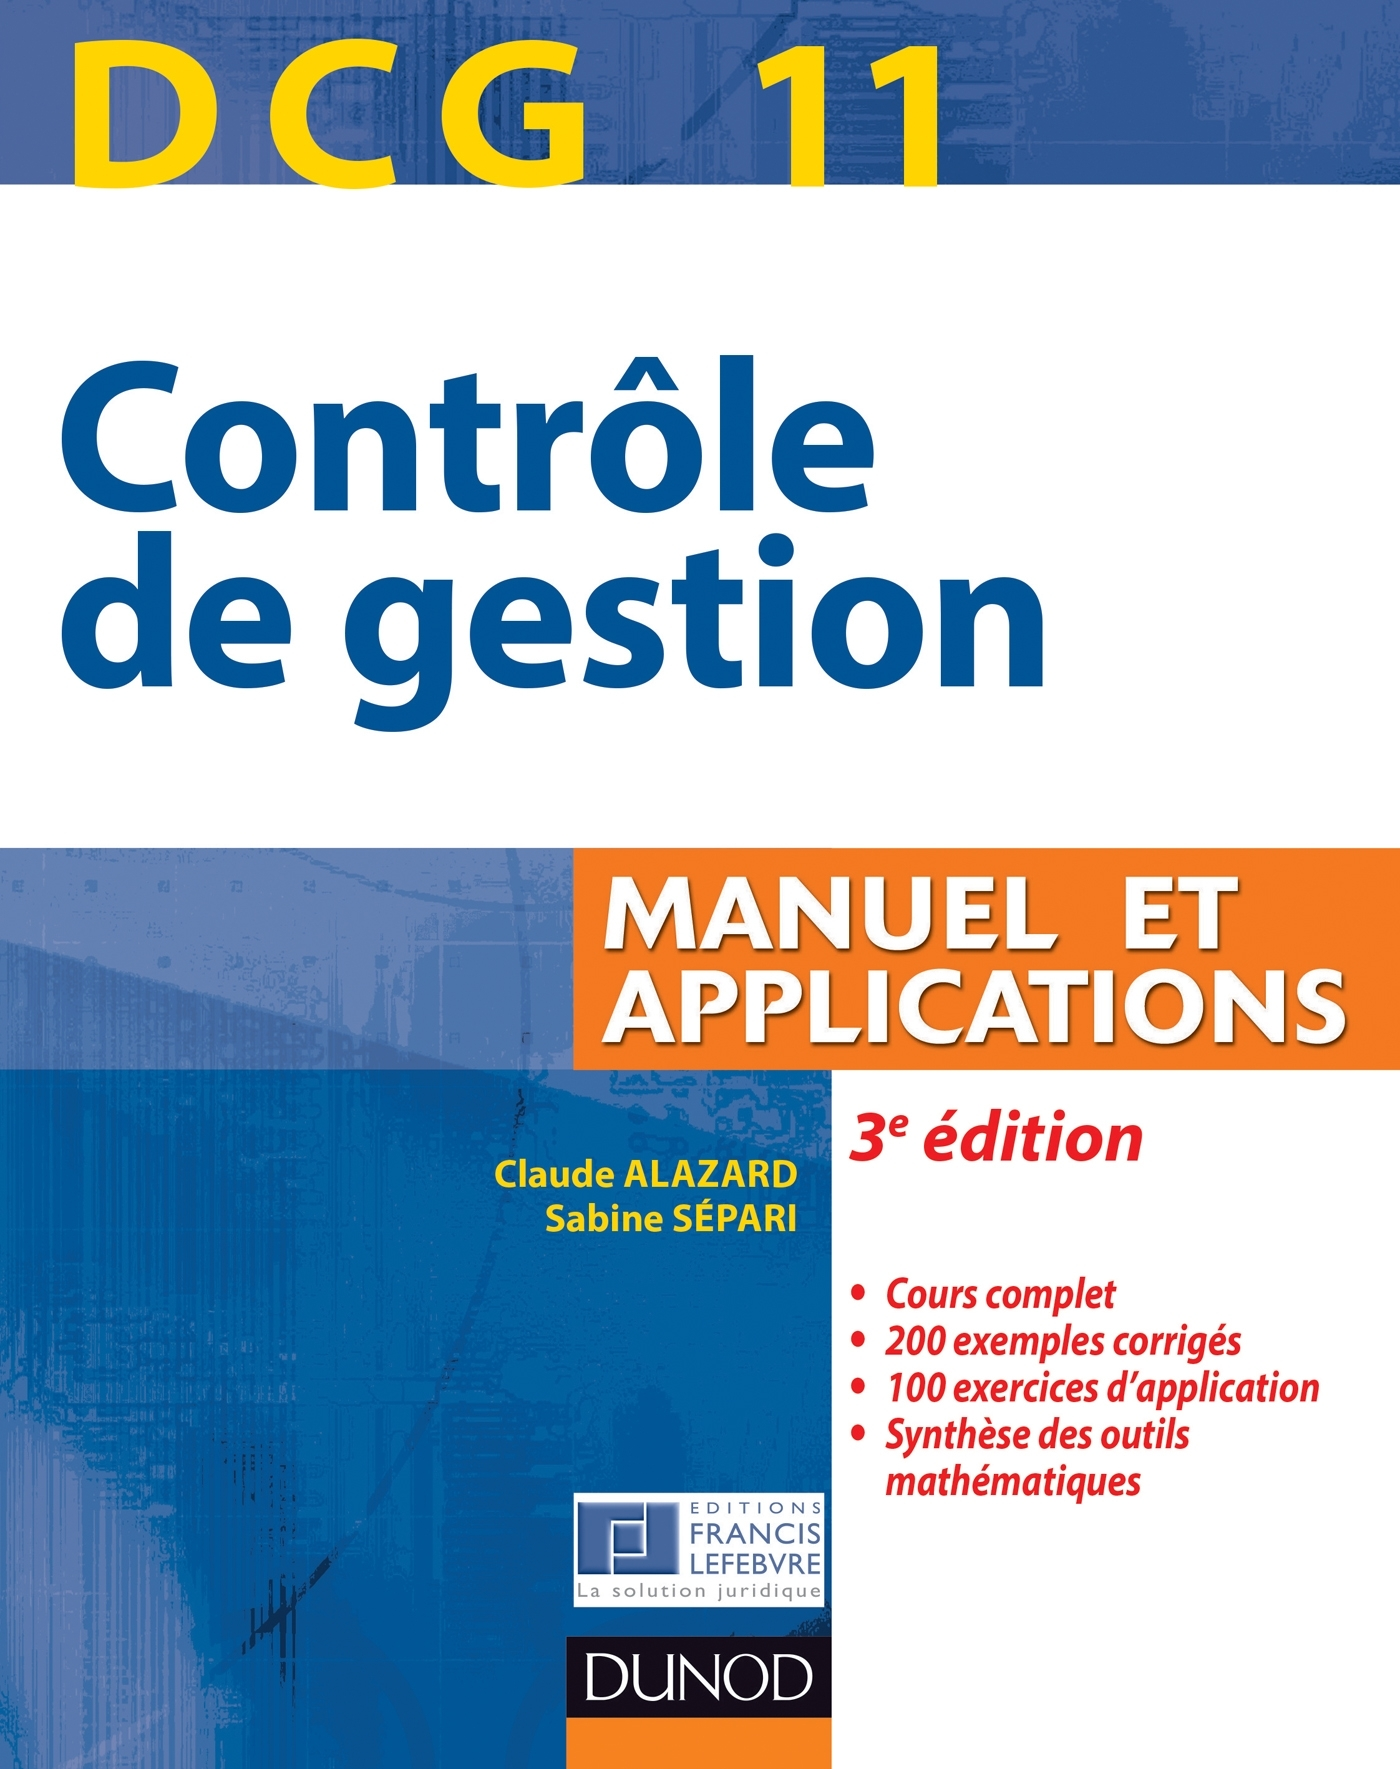 DCG 11 - CONTROLE DE GESTION - 3E EDITION - MANUEL ET APPLICATIONS